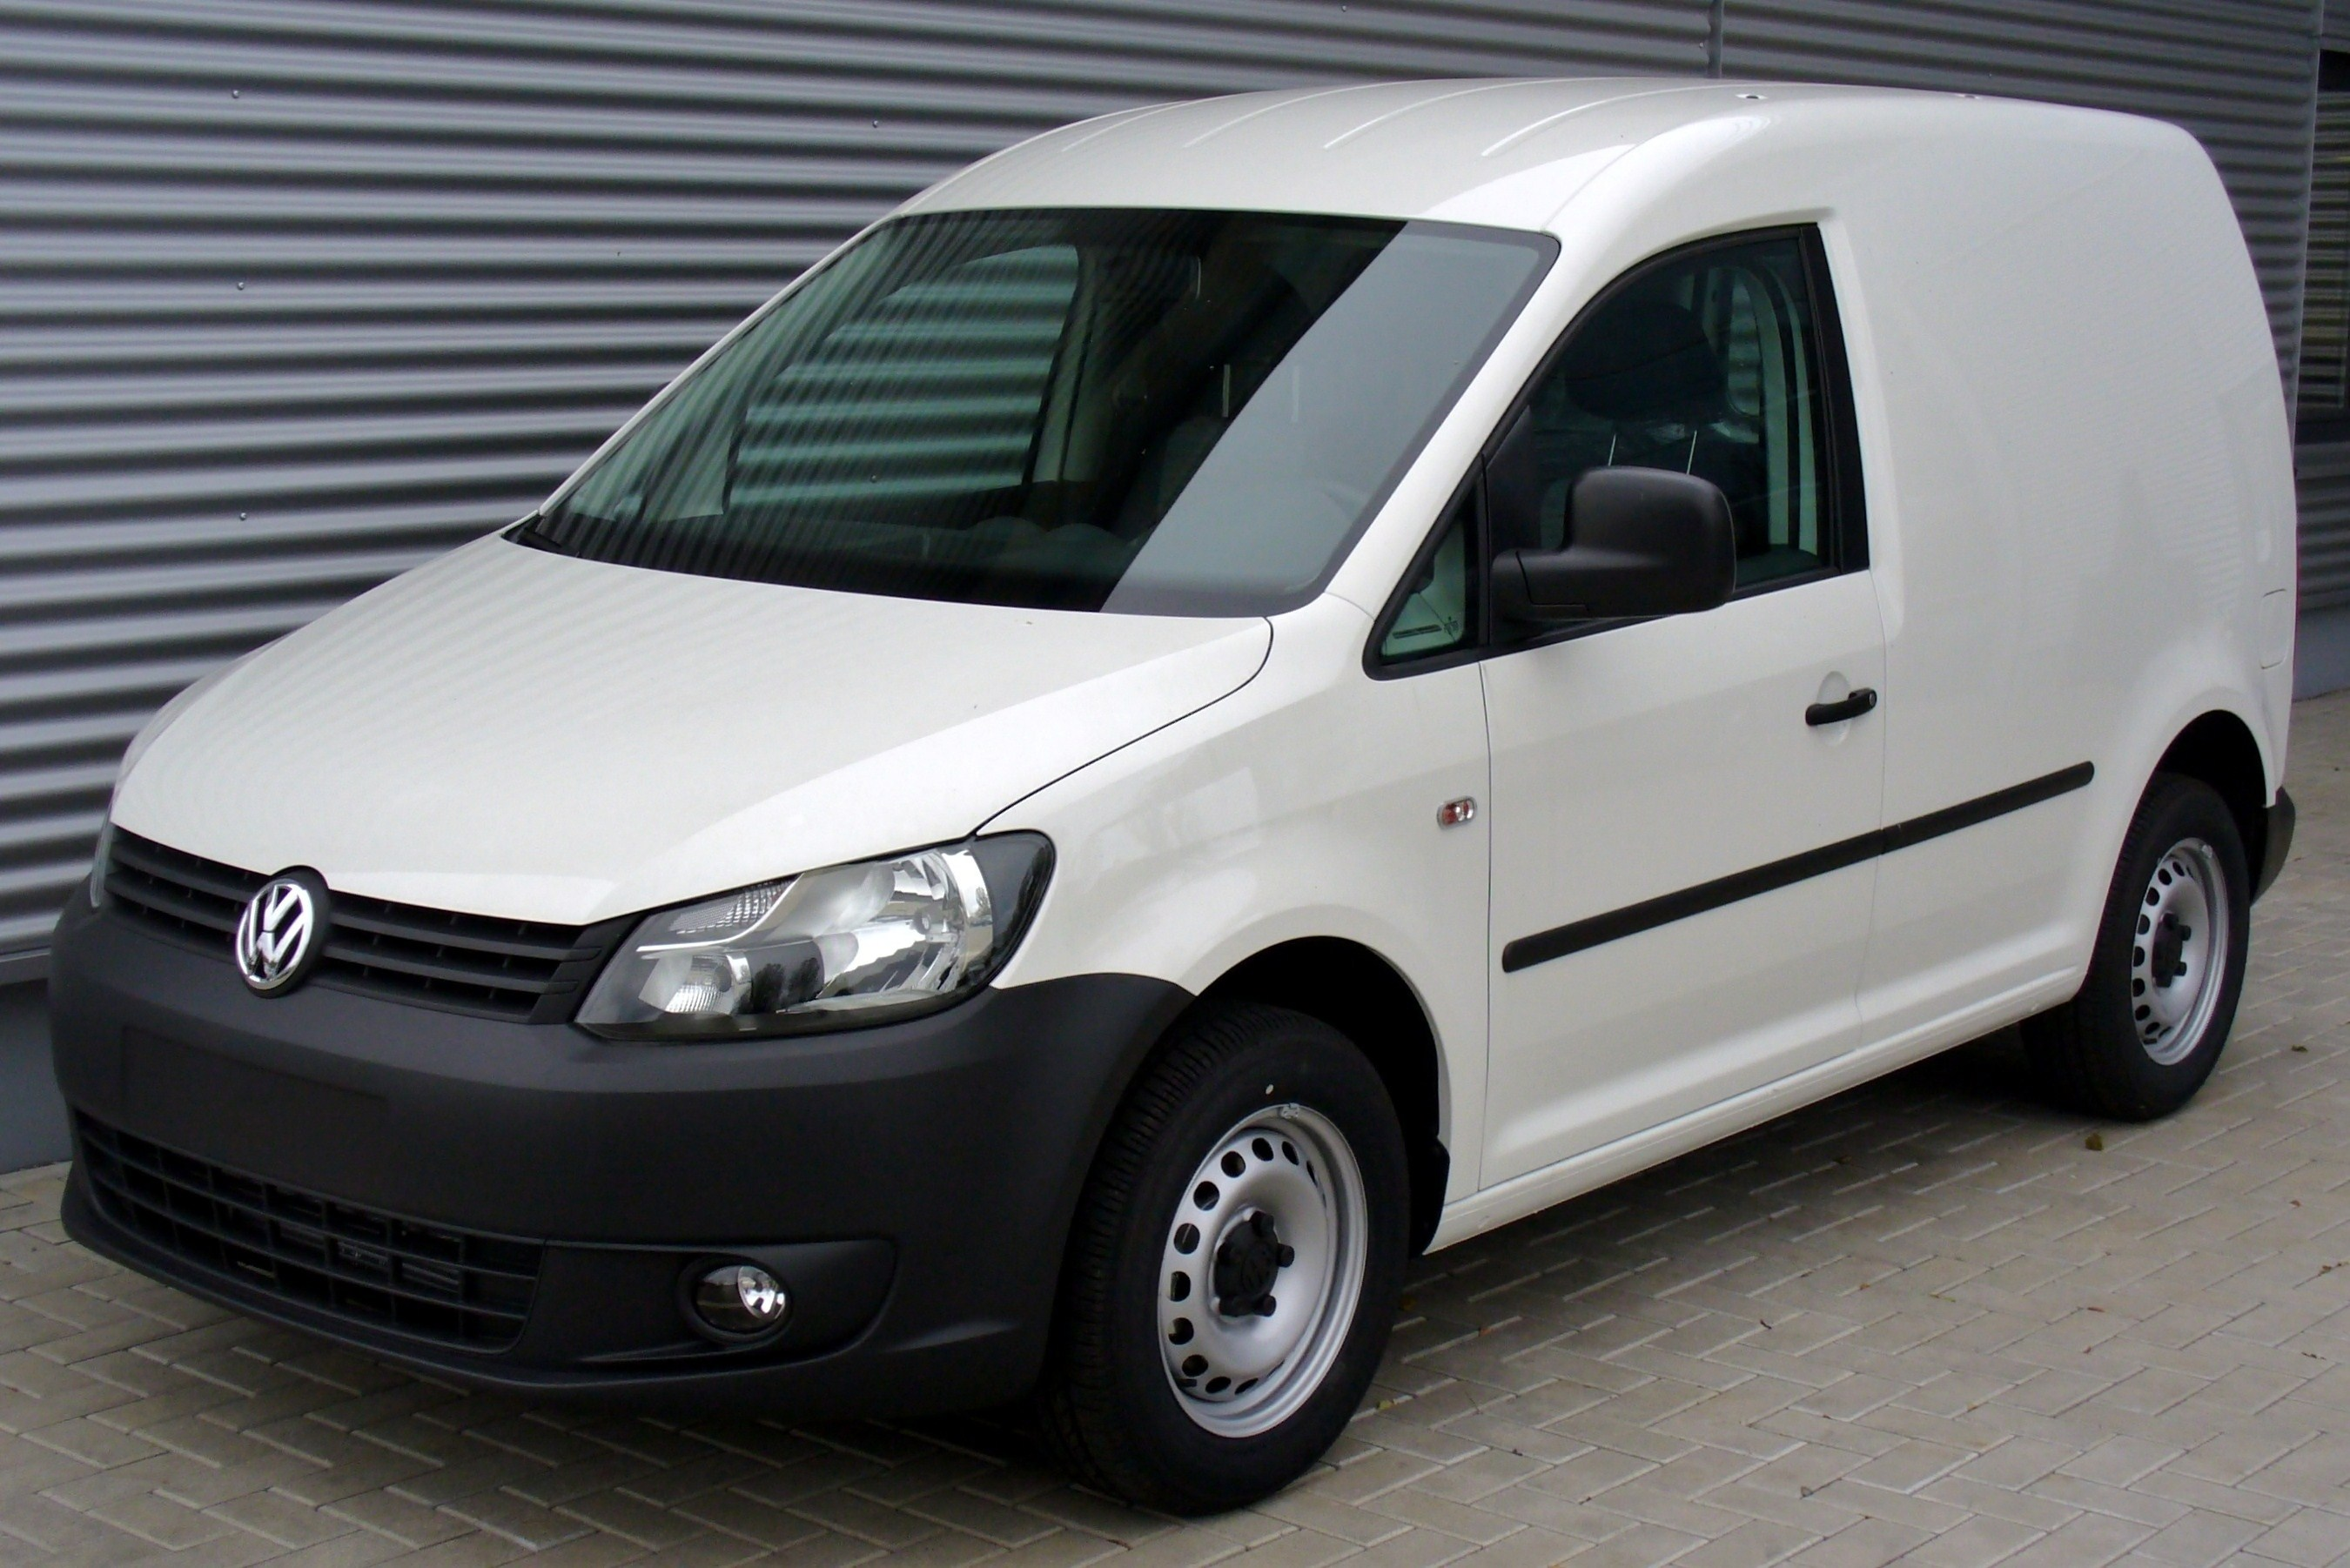 Volkswagen Caddy 1.9 2013 photo - 1